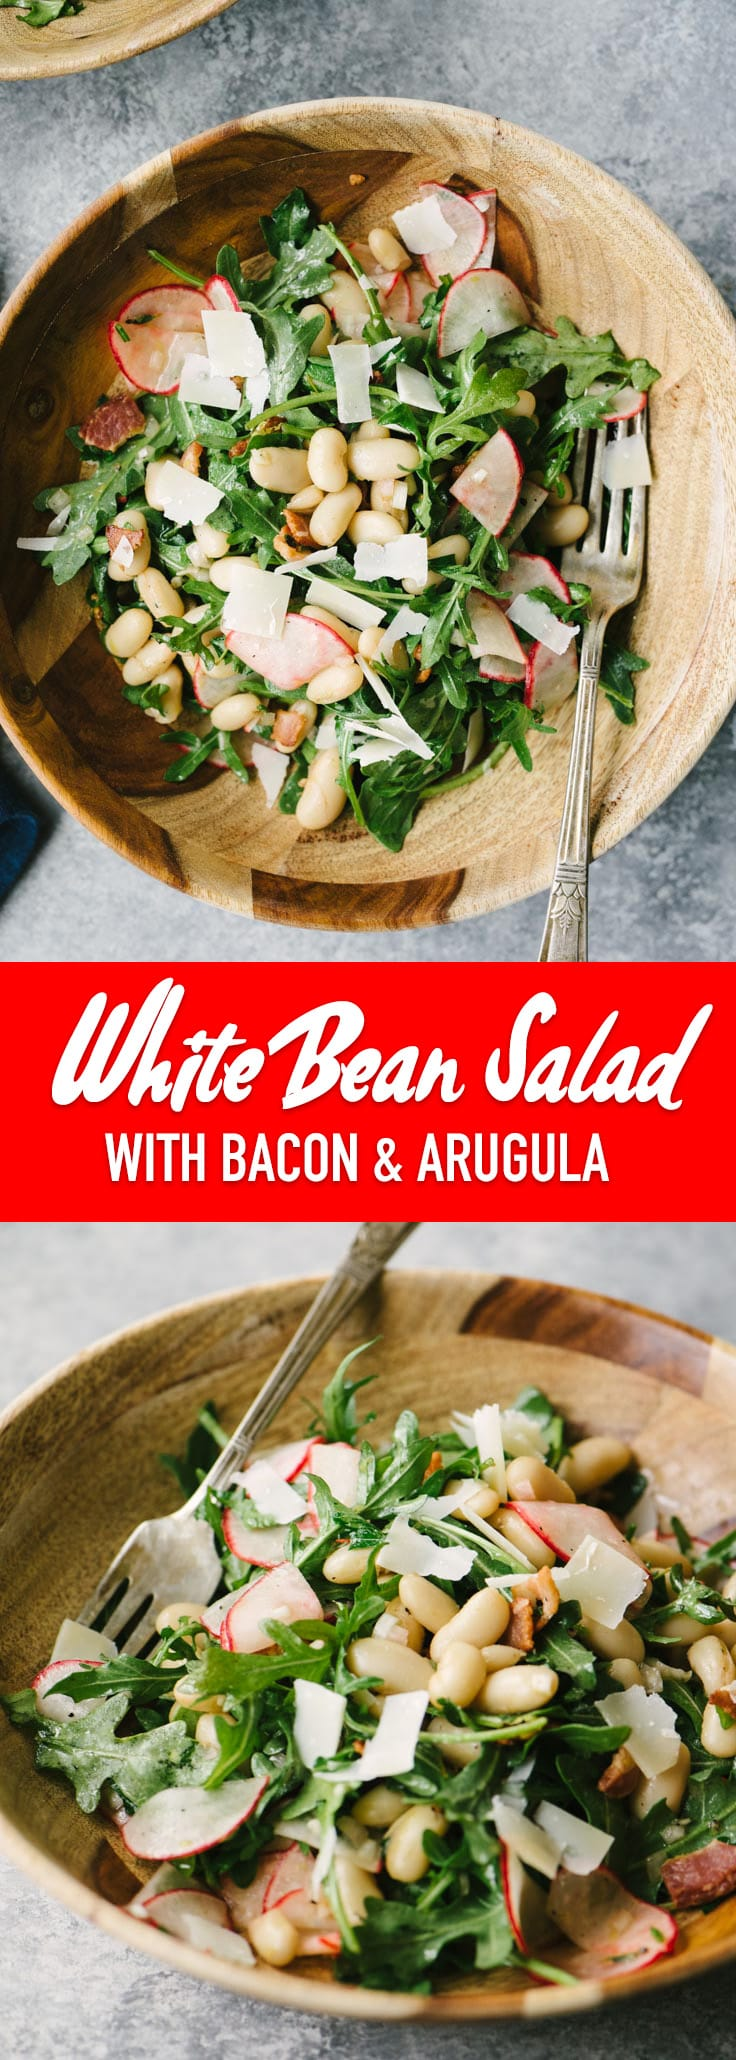 This white bean salad with bacon and arugula is a bold and tangy gluten free dinner. It's easy and hearty, and ready in just 25 minutes. #whitebeans #glutenfree #bacon #quickandeasy #recipe #grainfree #realfood #wholefoods